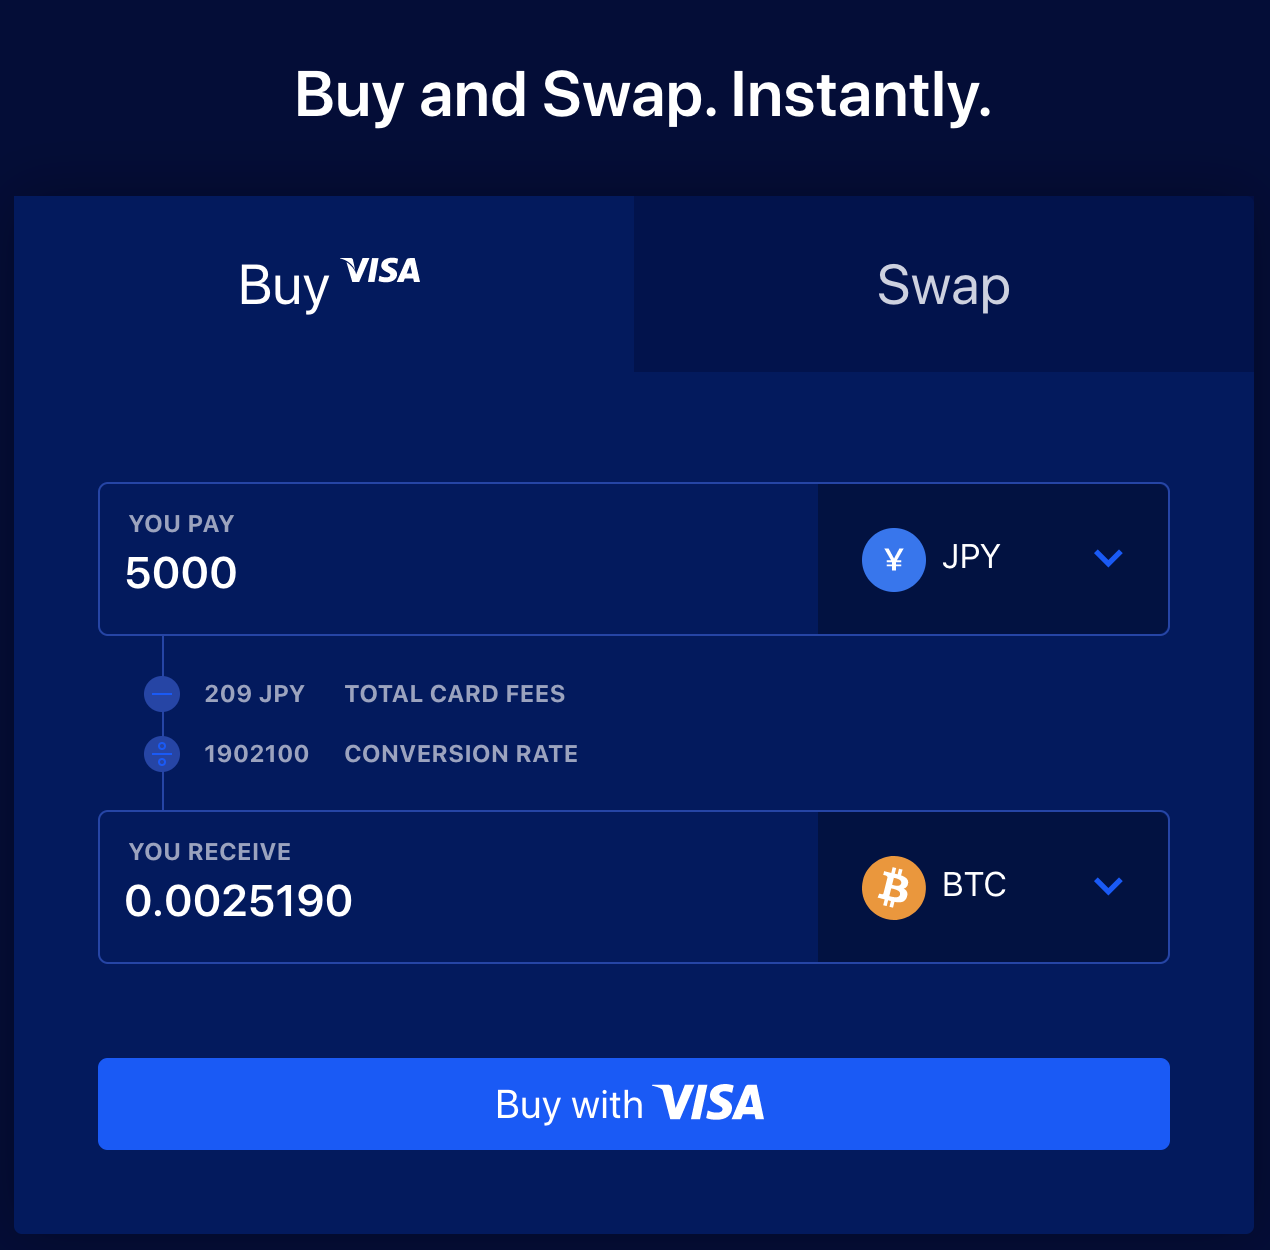 Buy and swap